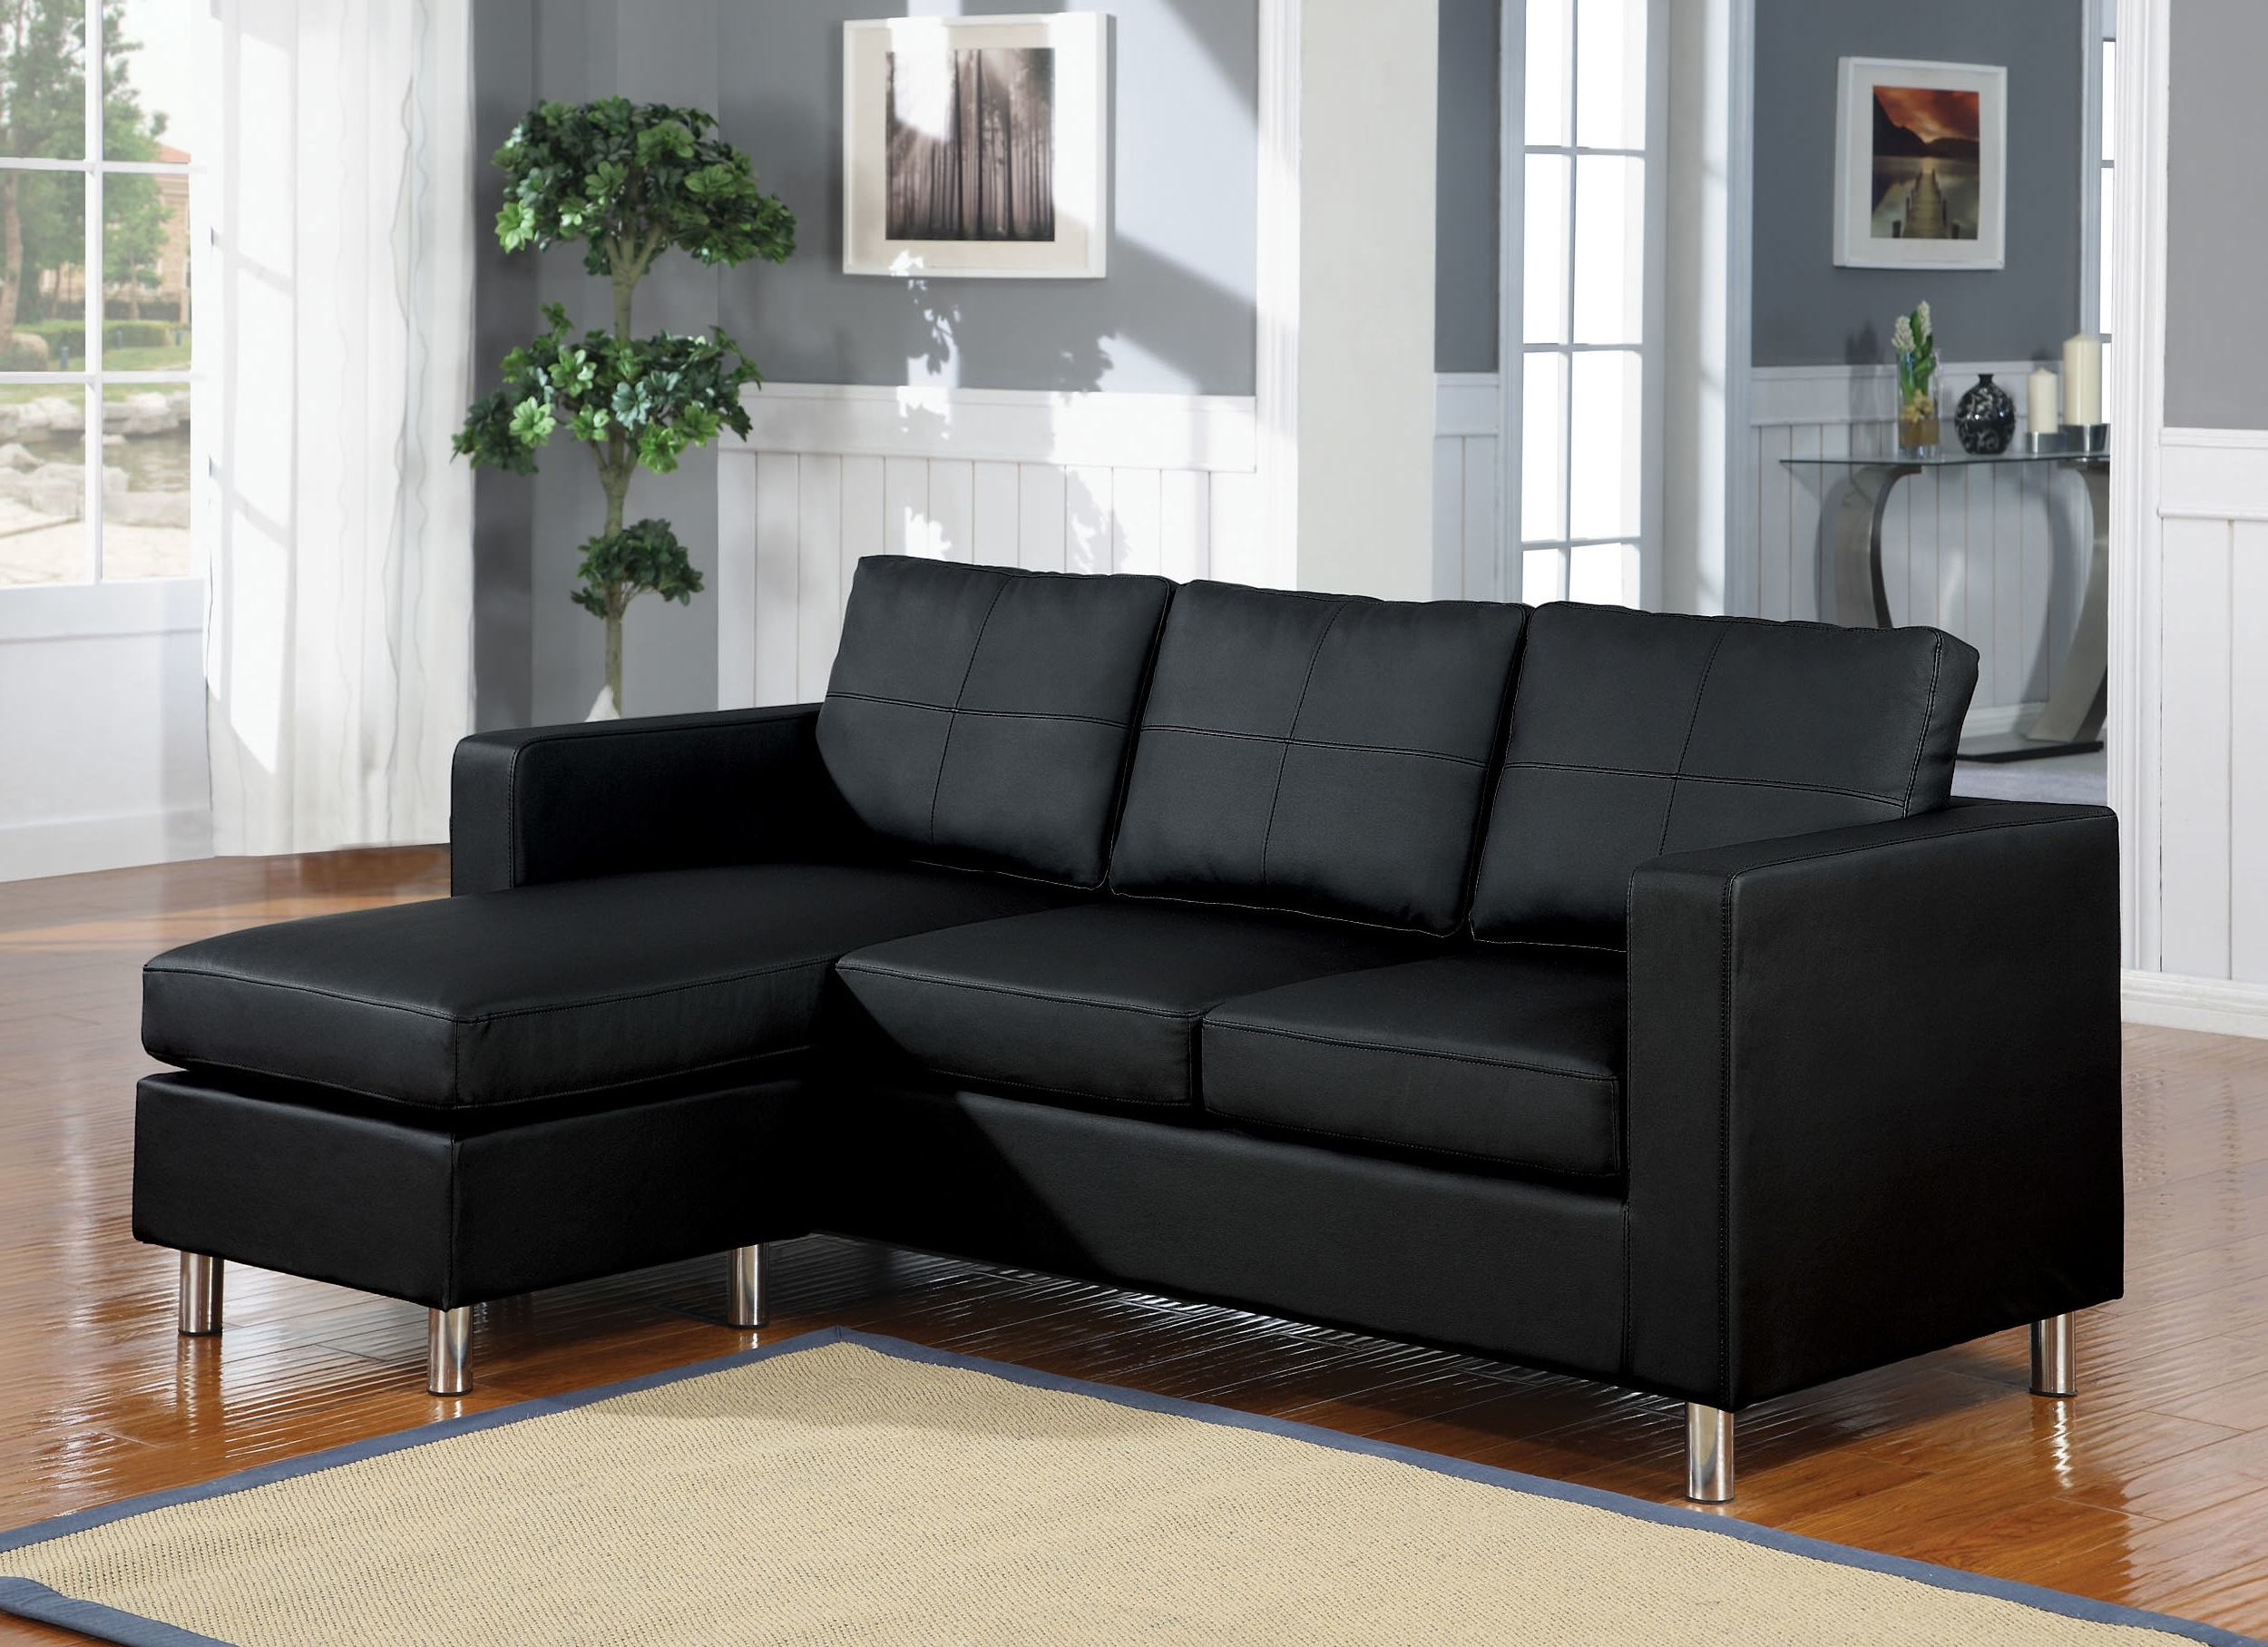 Design In Leather Modular Sectional Sofas (View 12 of 15)